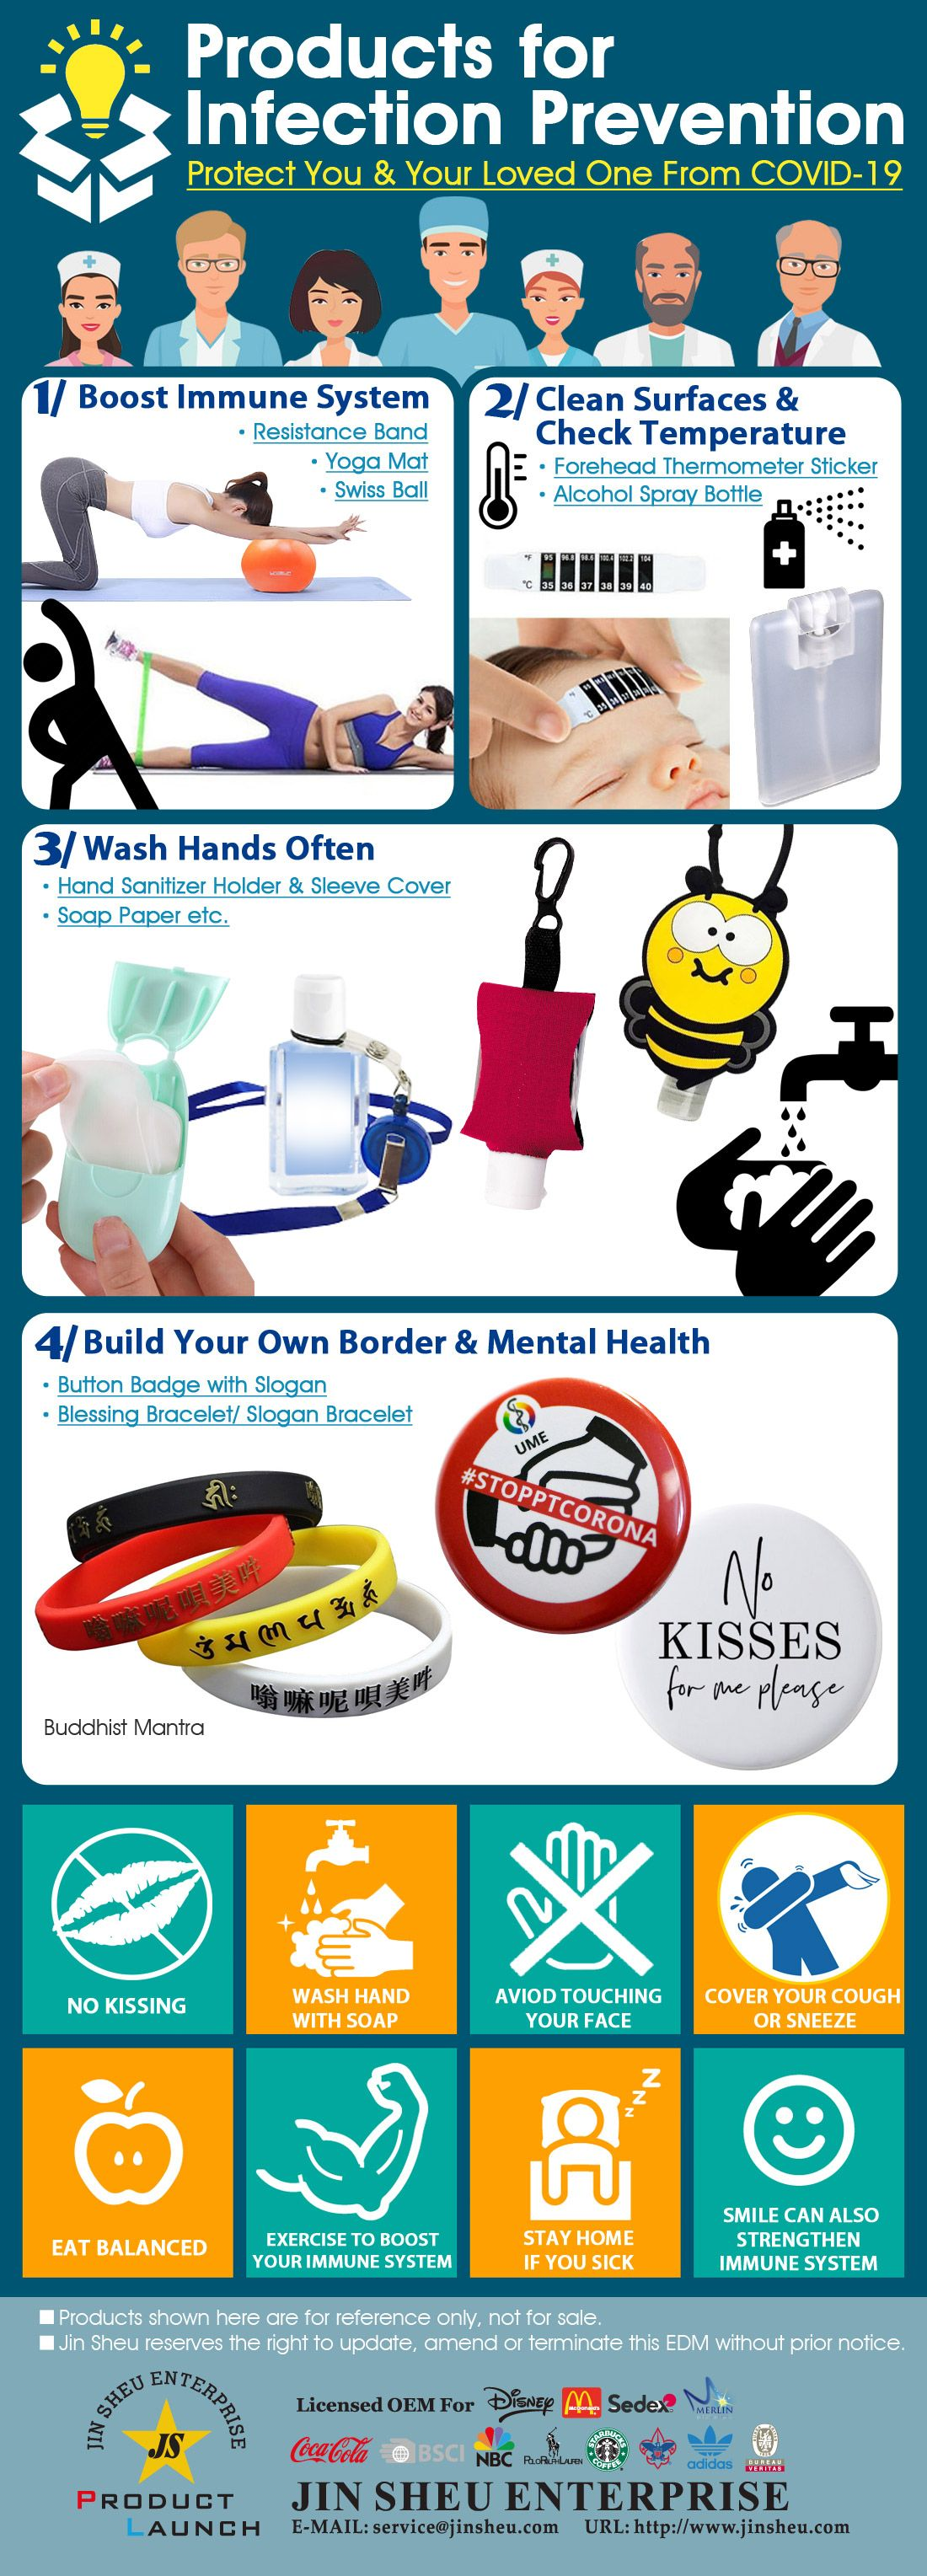 Products for Infection Prevention